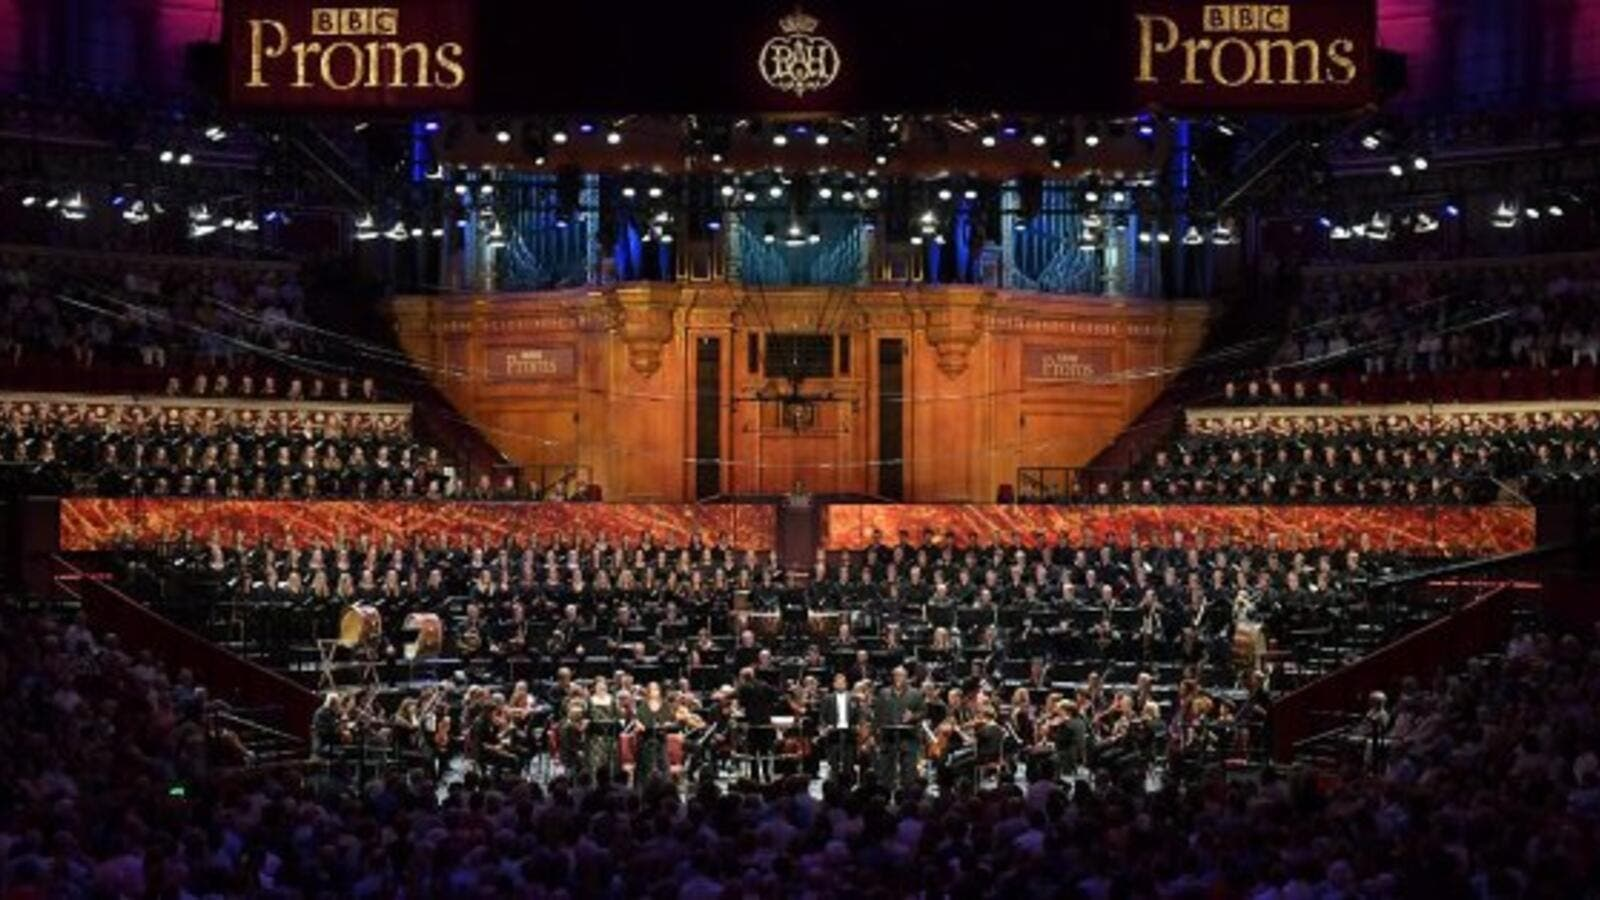 BBC Proms — one of the biggest classical musical festivals in the world (Twitter)